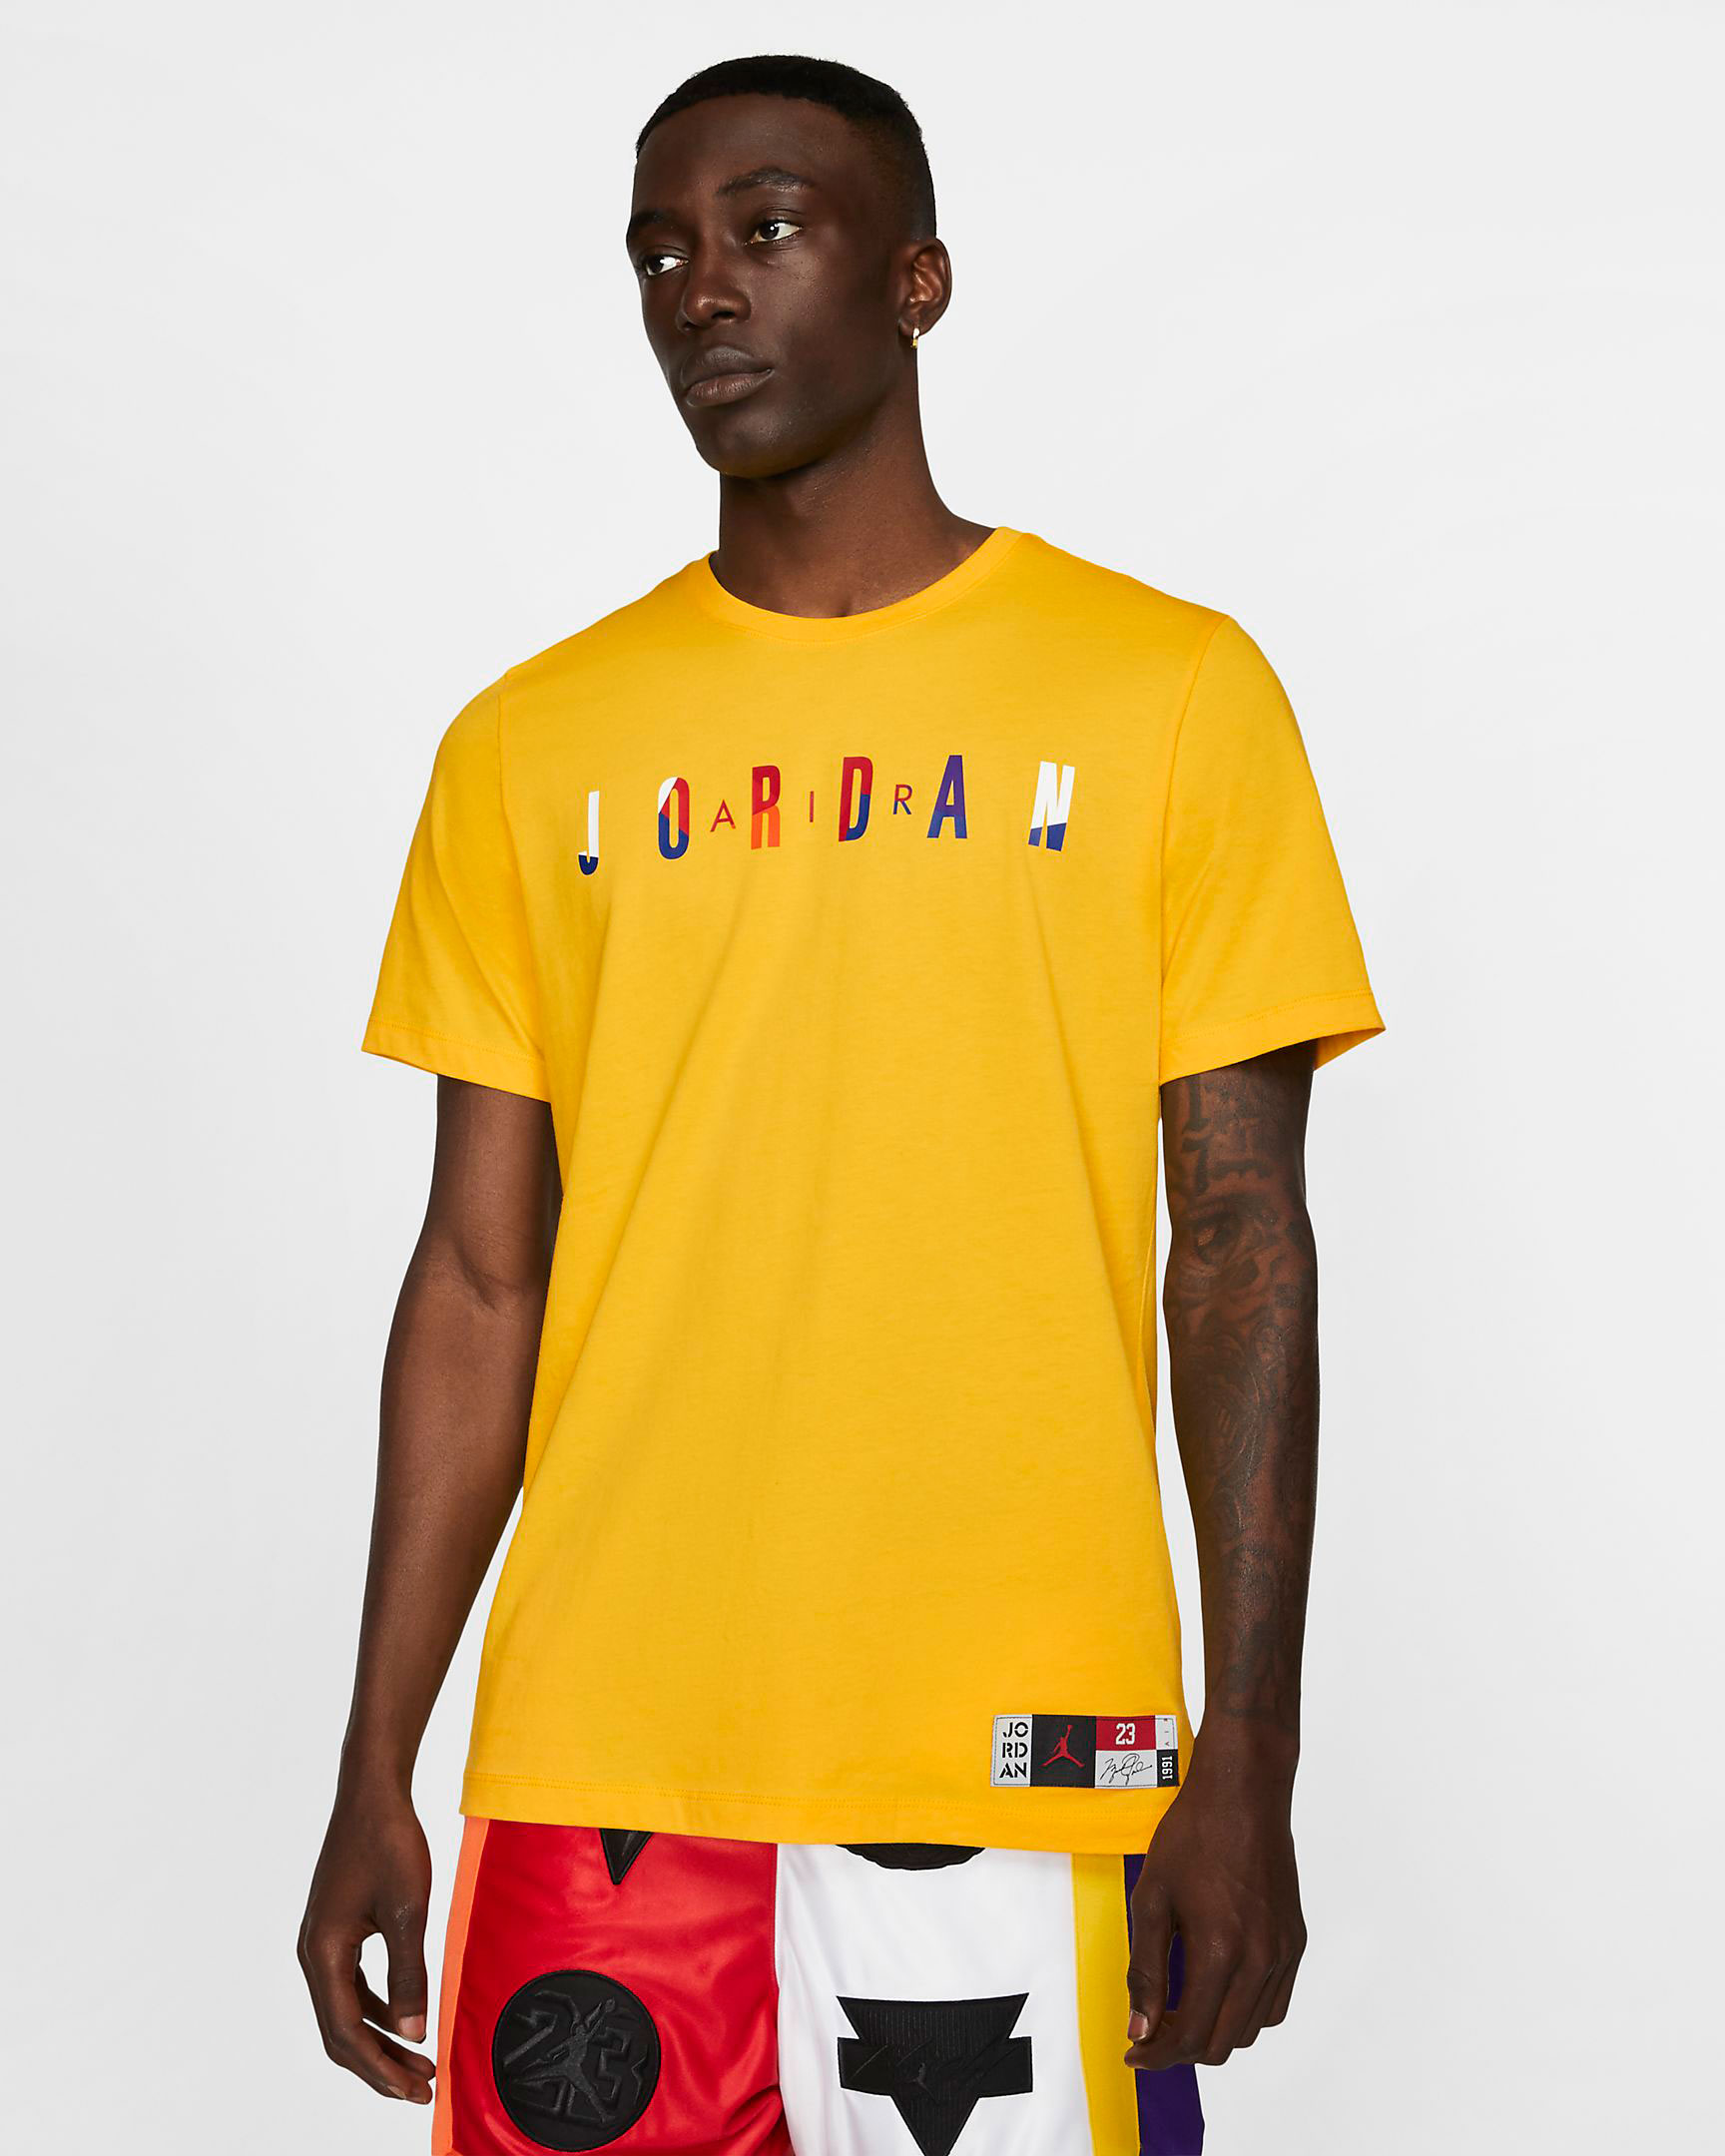 air-jordan-14-yellow-ferrari-shirt-match-1